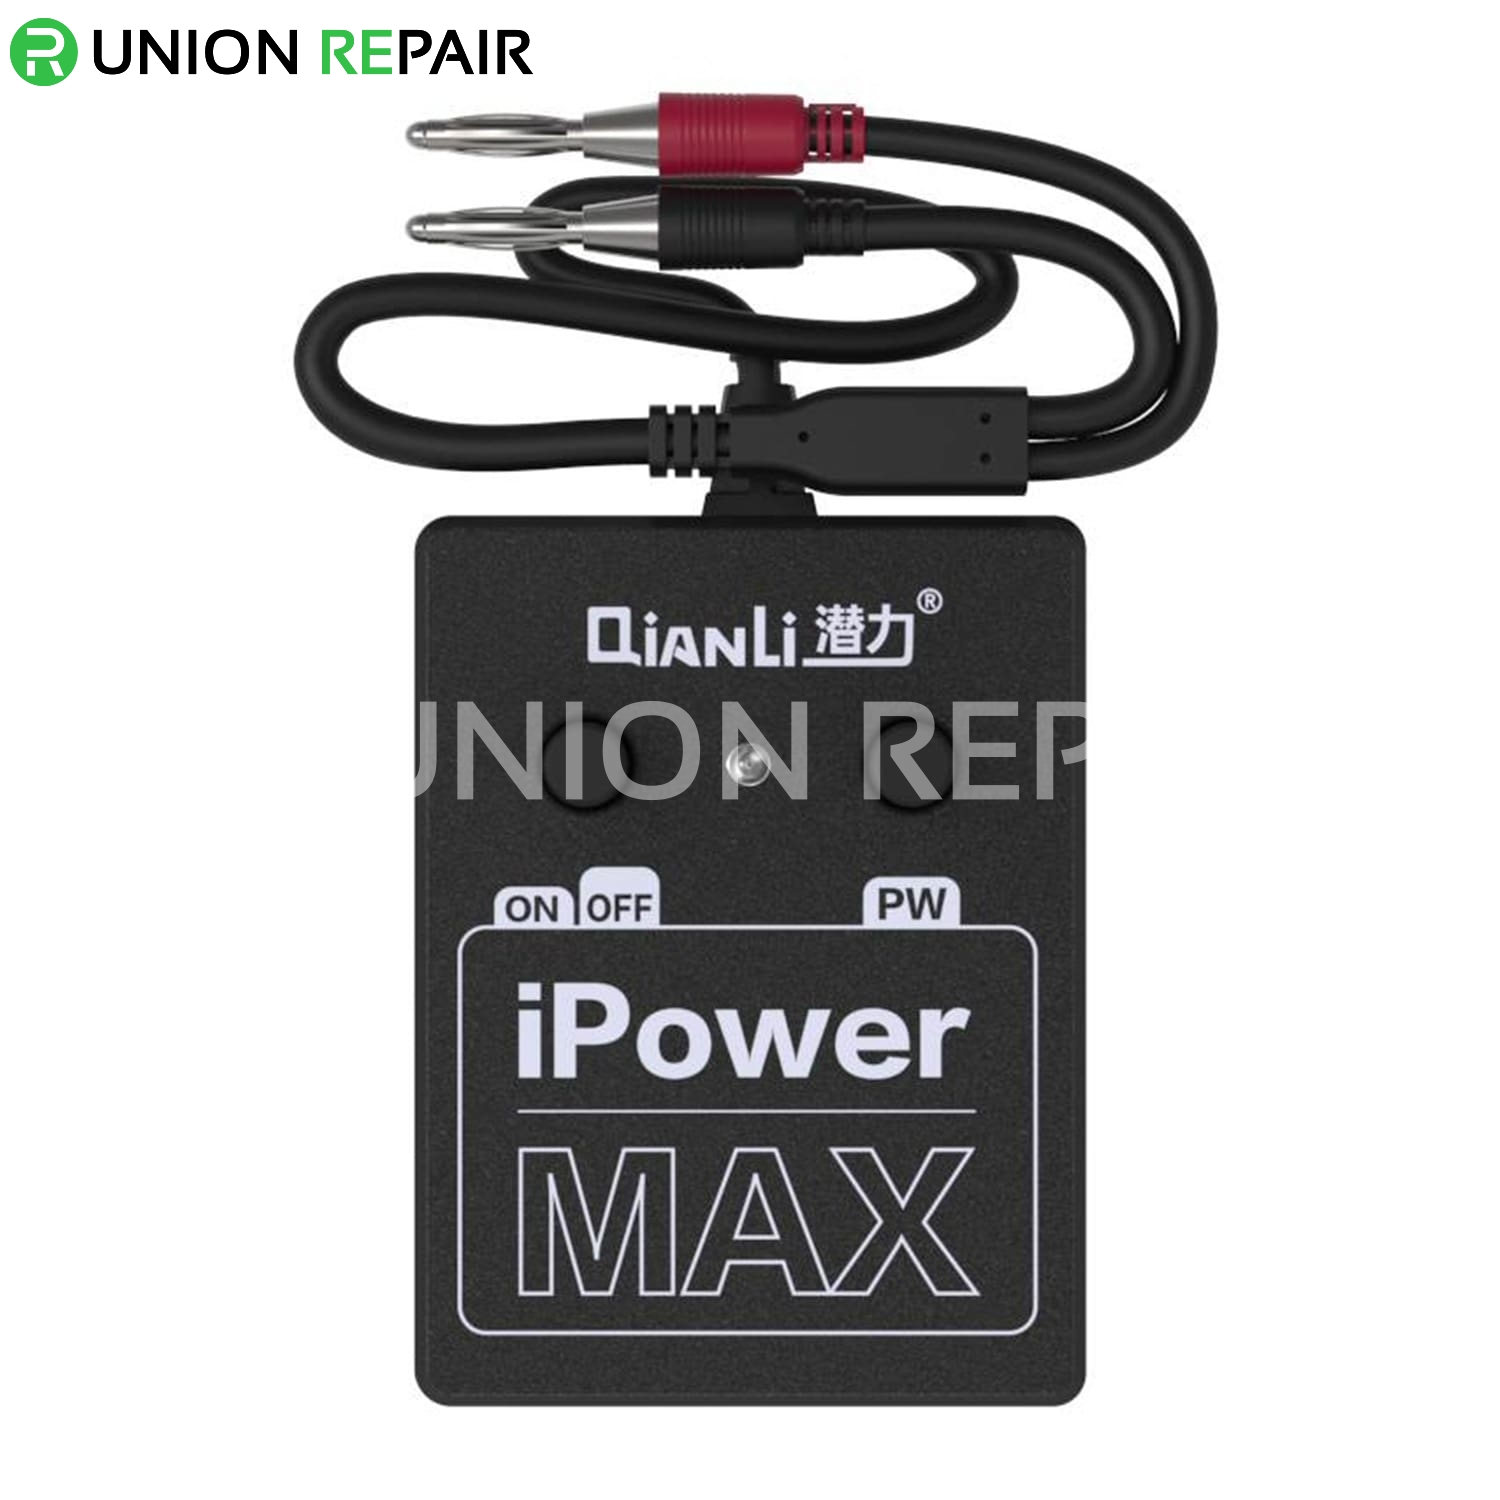 QianLi ToolPlus Power Line with ON/OFF Switch iPower MAX for iPhone 6G/6P/6S/6SP/7G/7P/8G/8P/X/Xs/XsMax